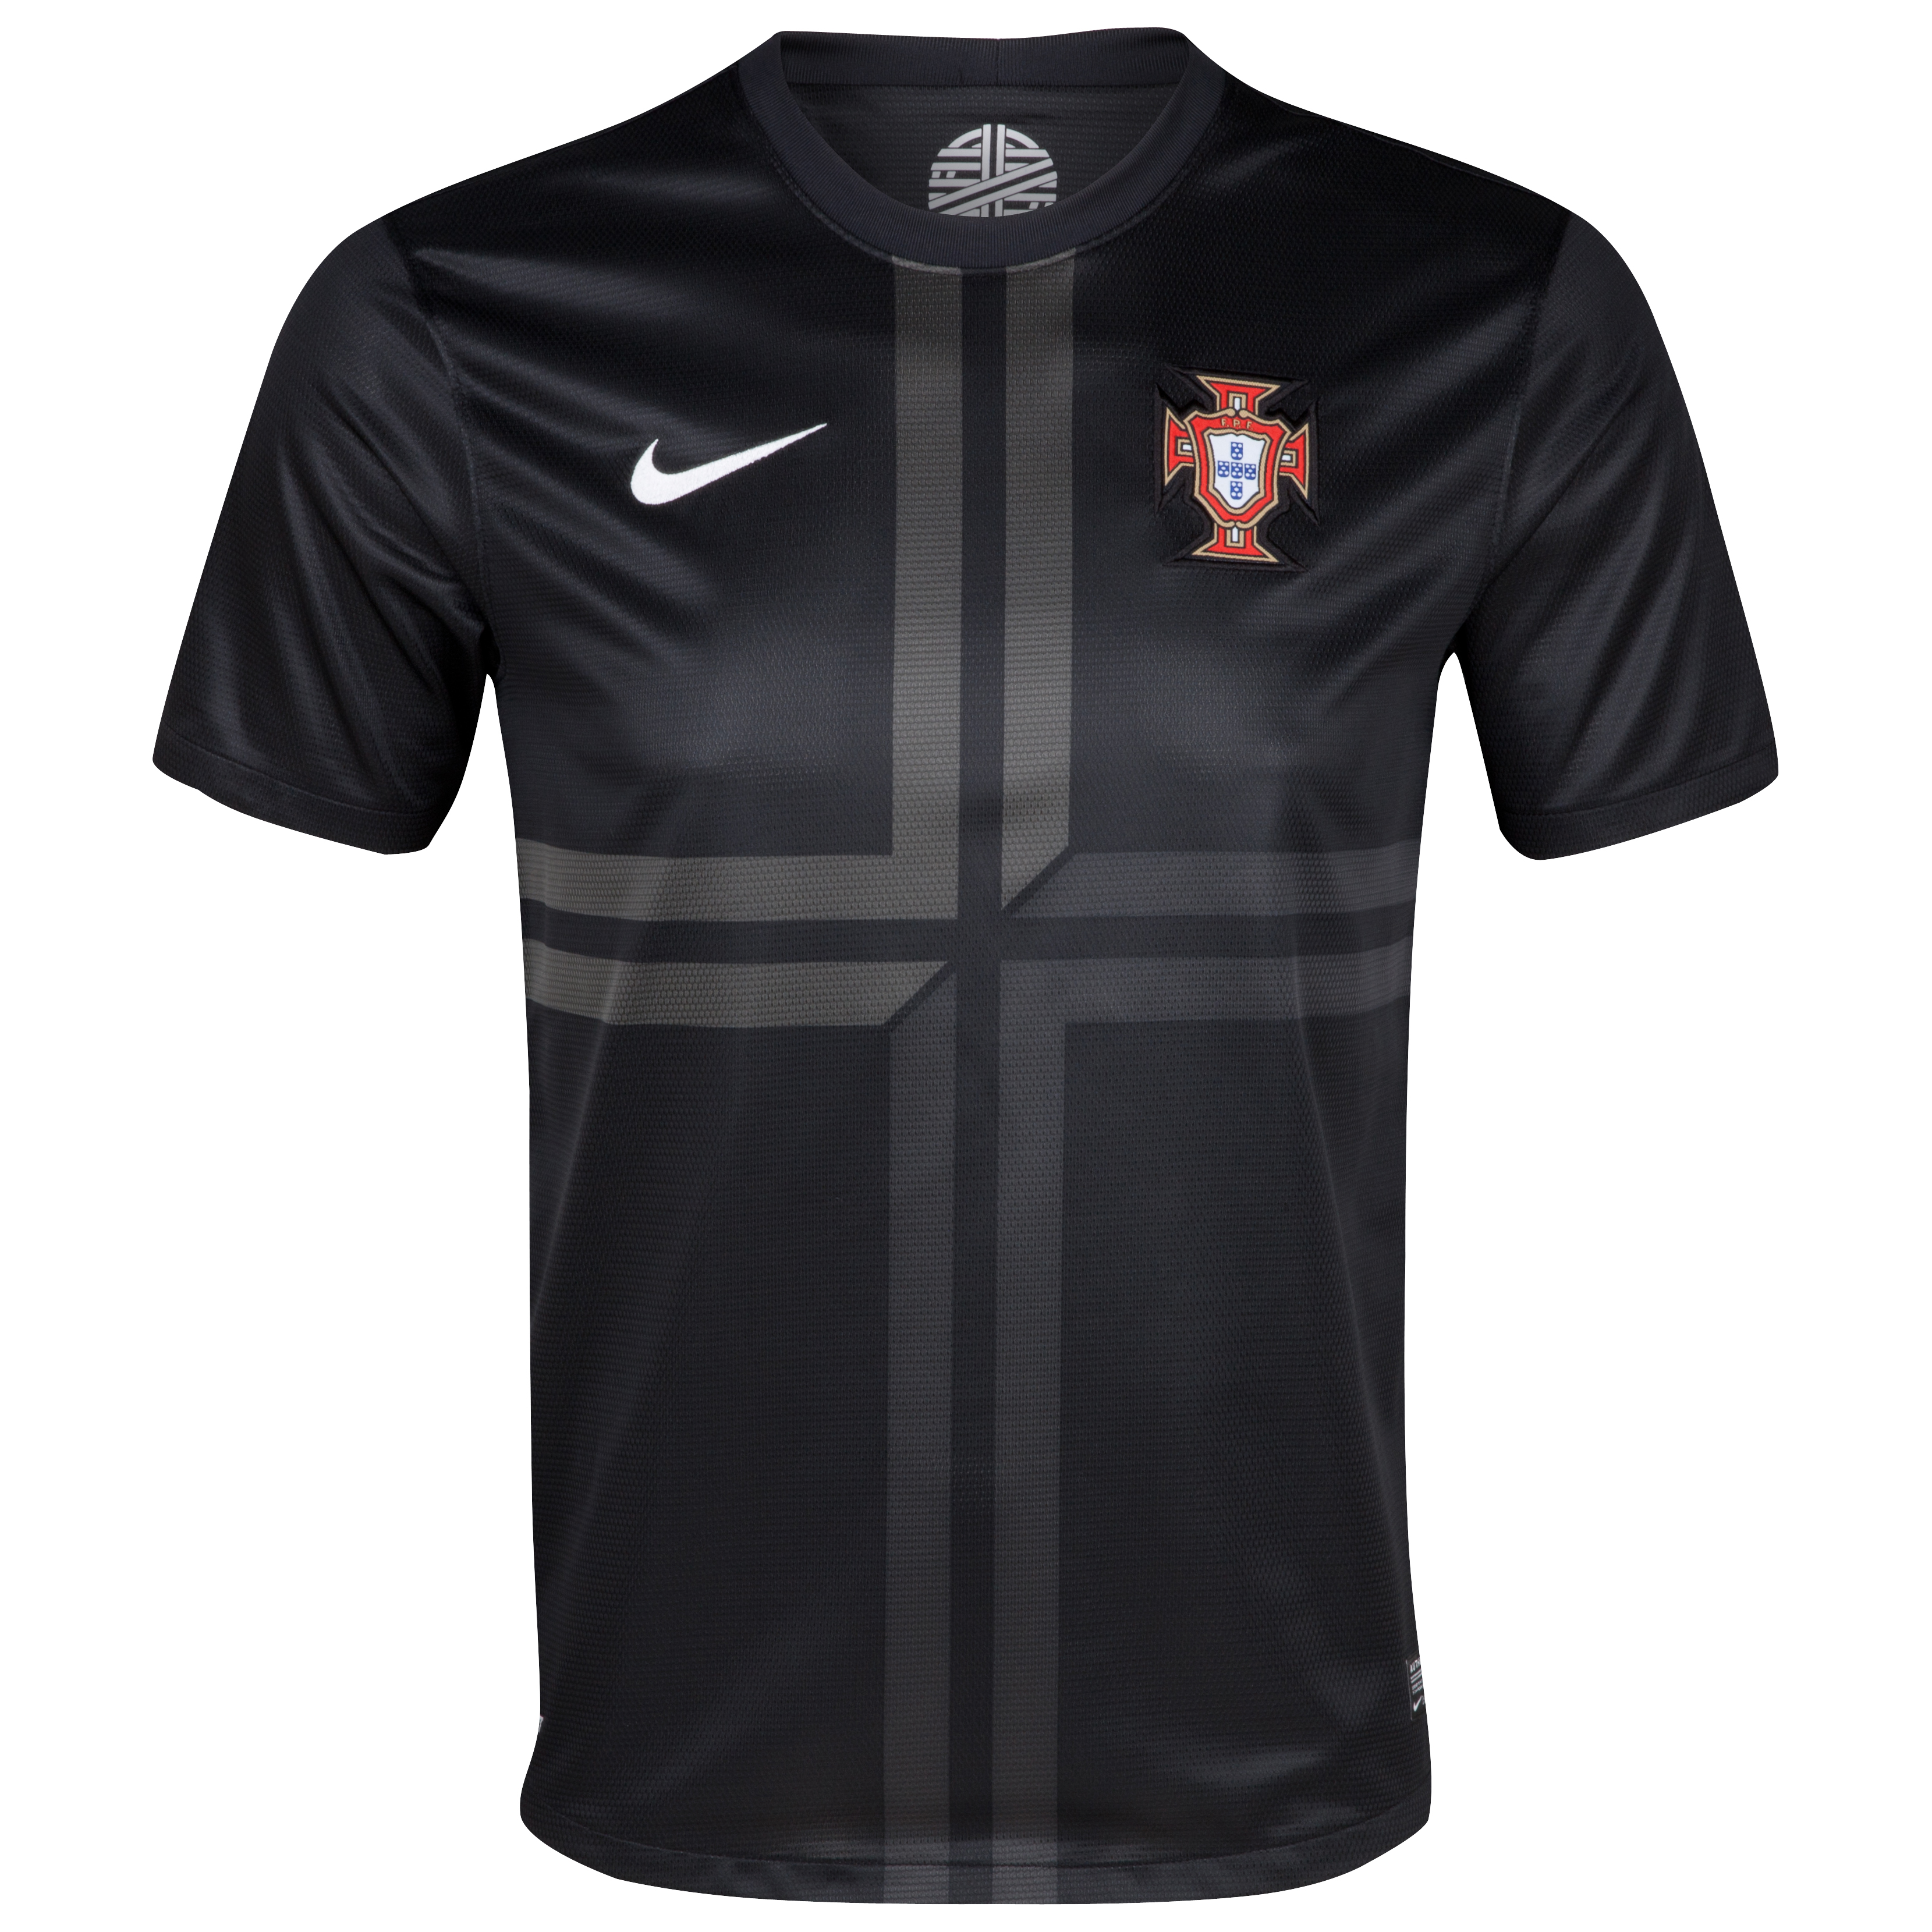 Portugal Away Shirt 2013/14 - Youths with Nani 17 printing